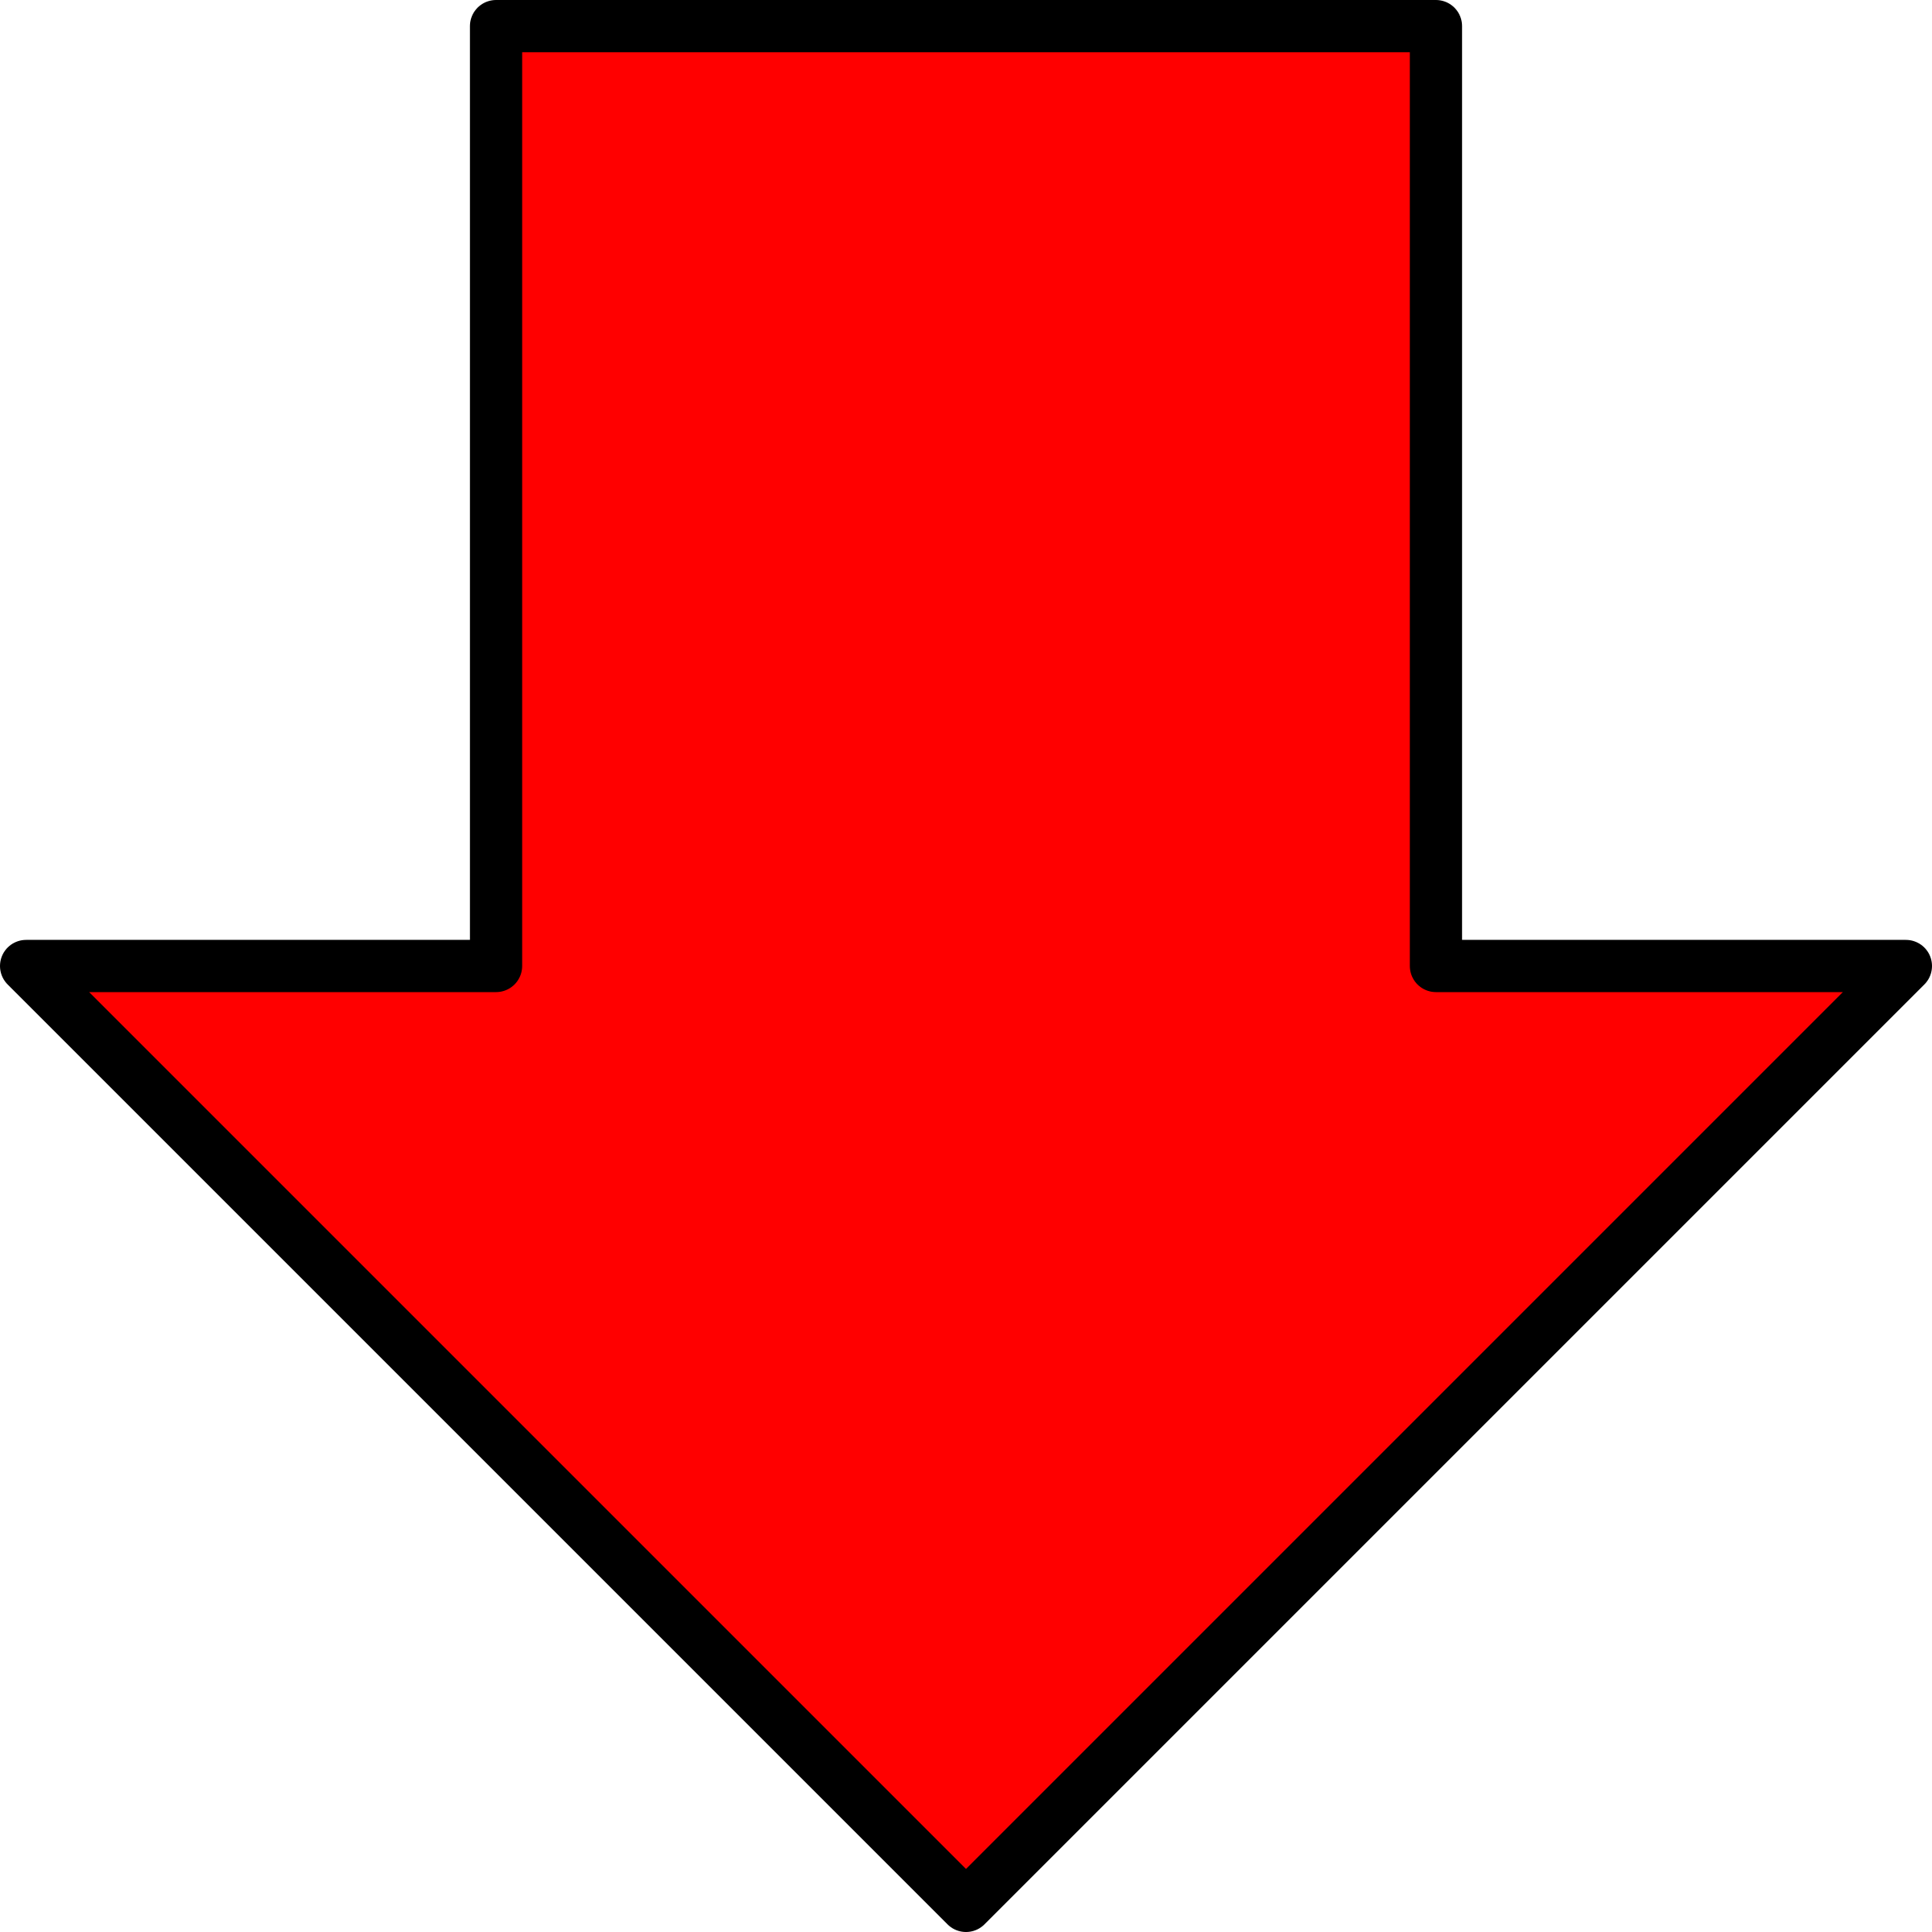 red arrow down icon png